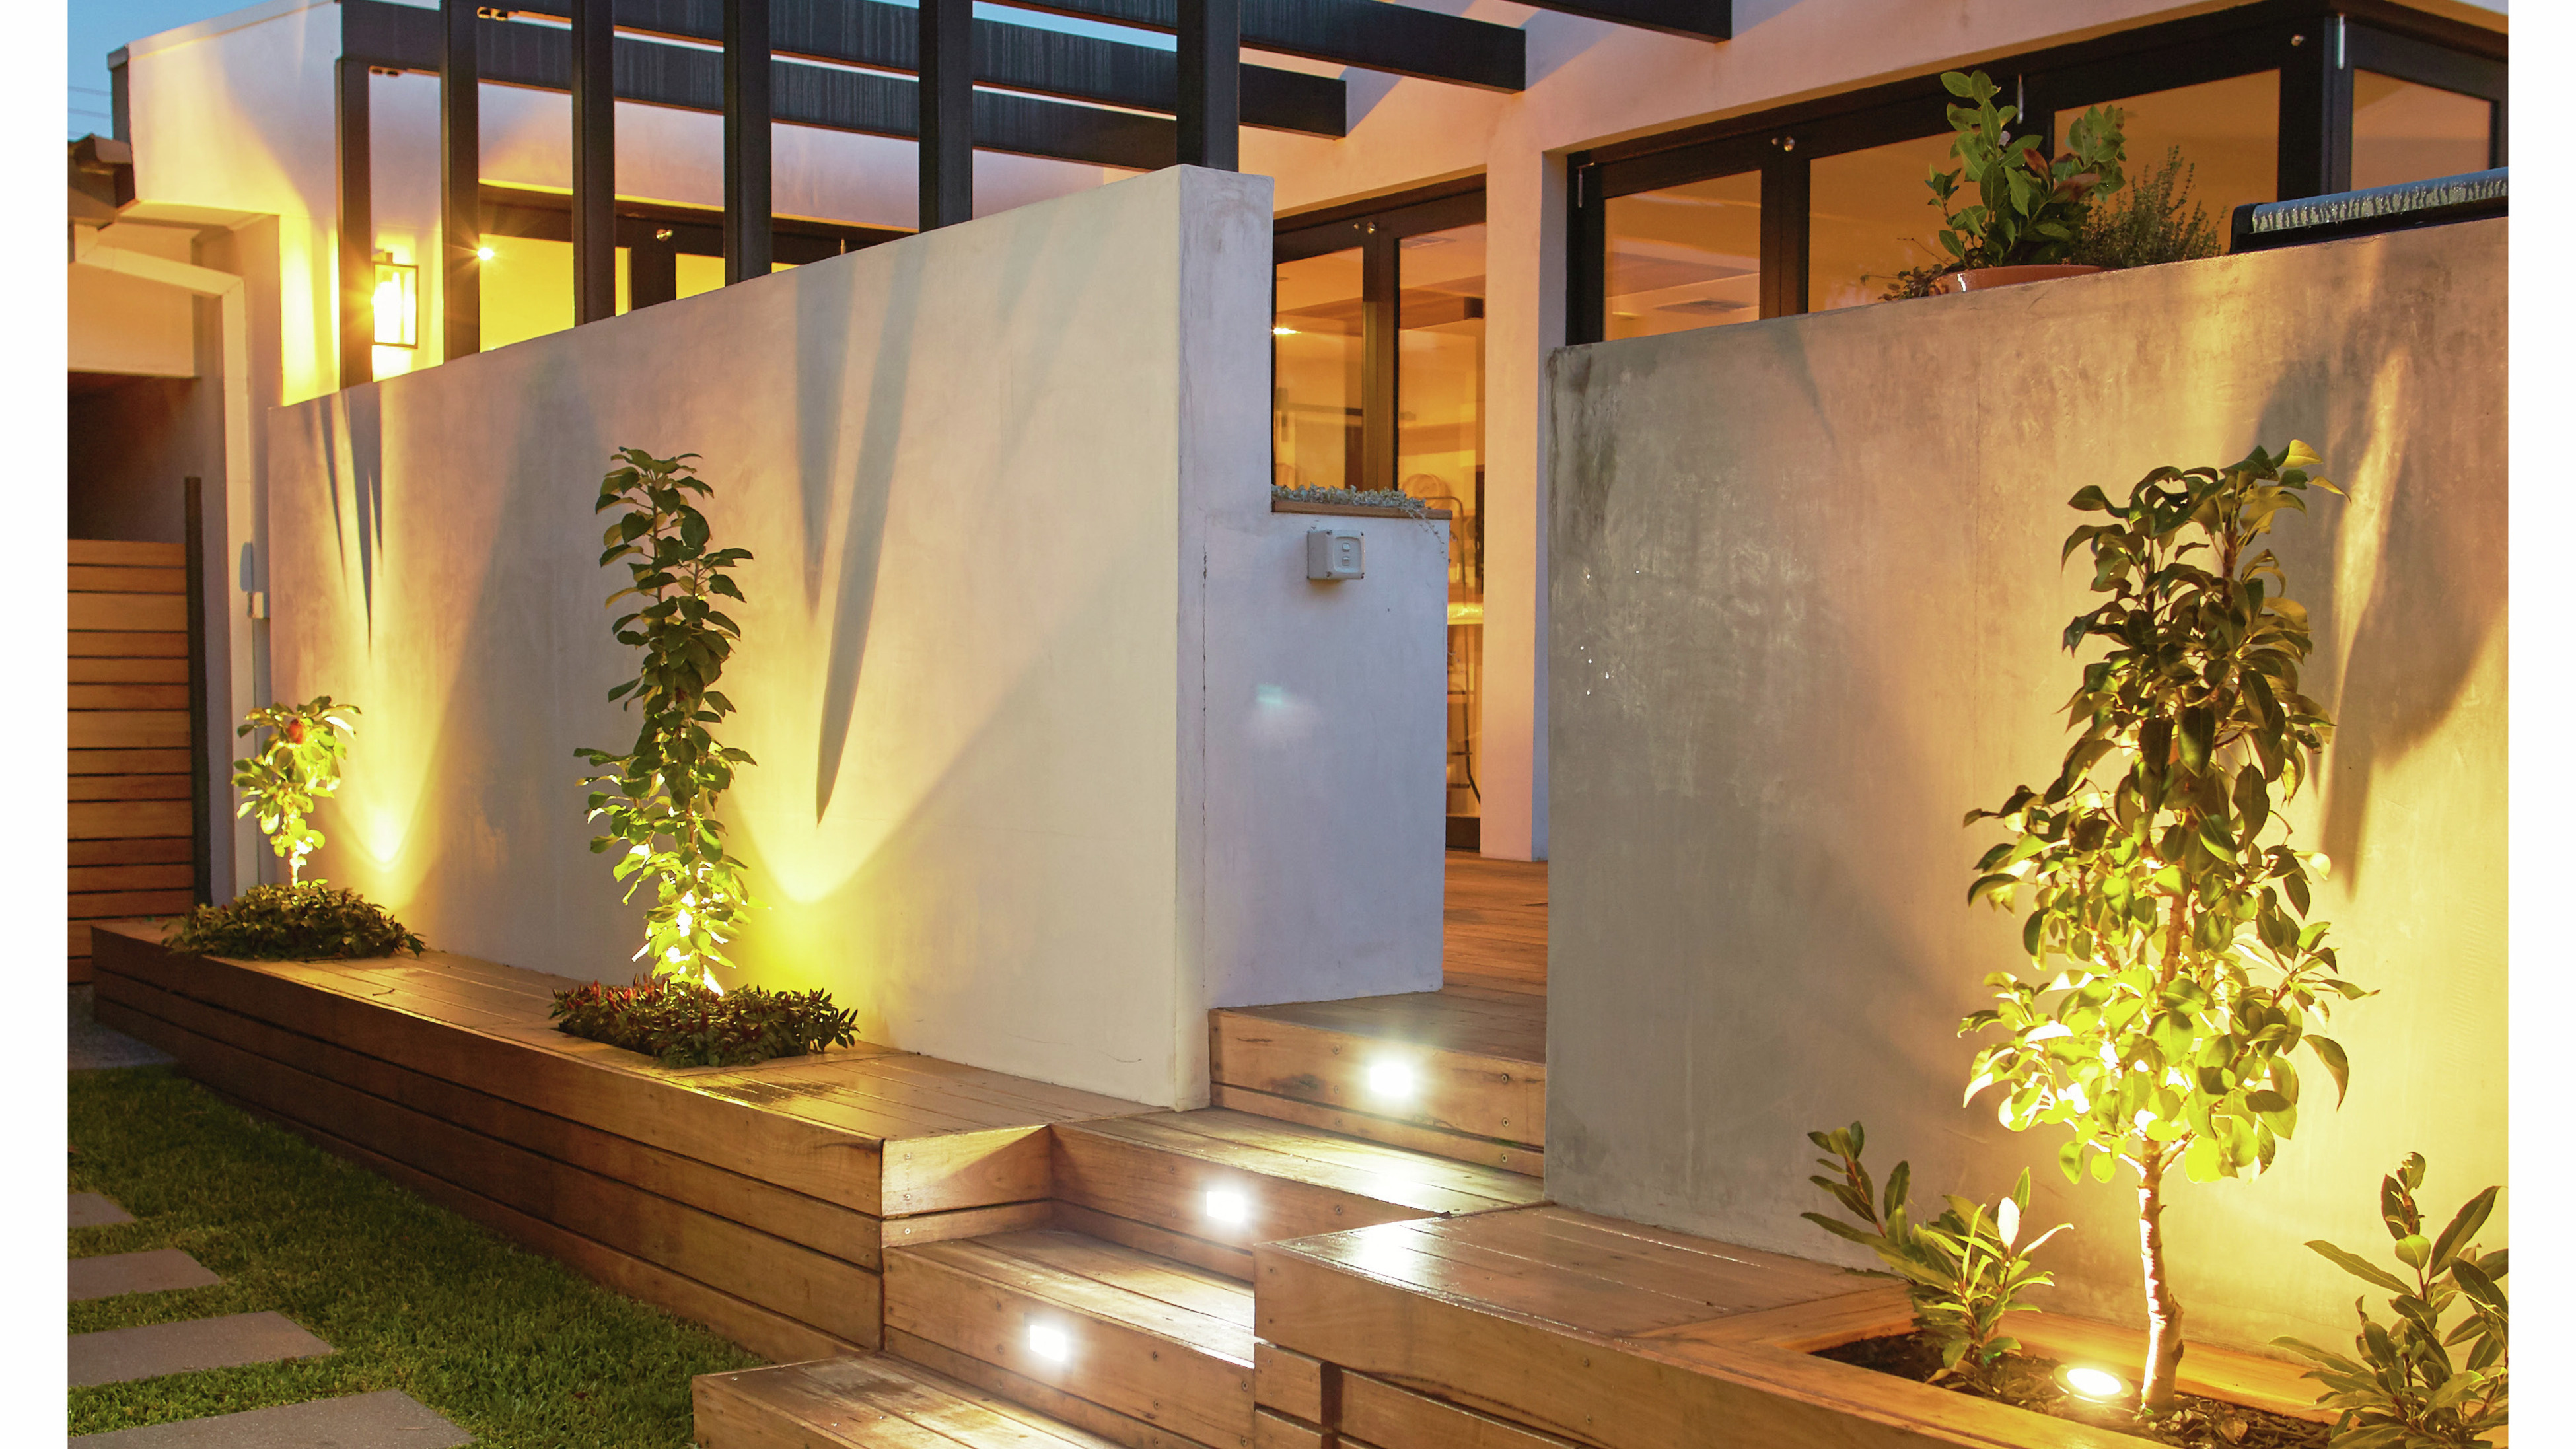 Modern house with decking and soft lighting at night time.